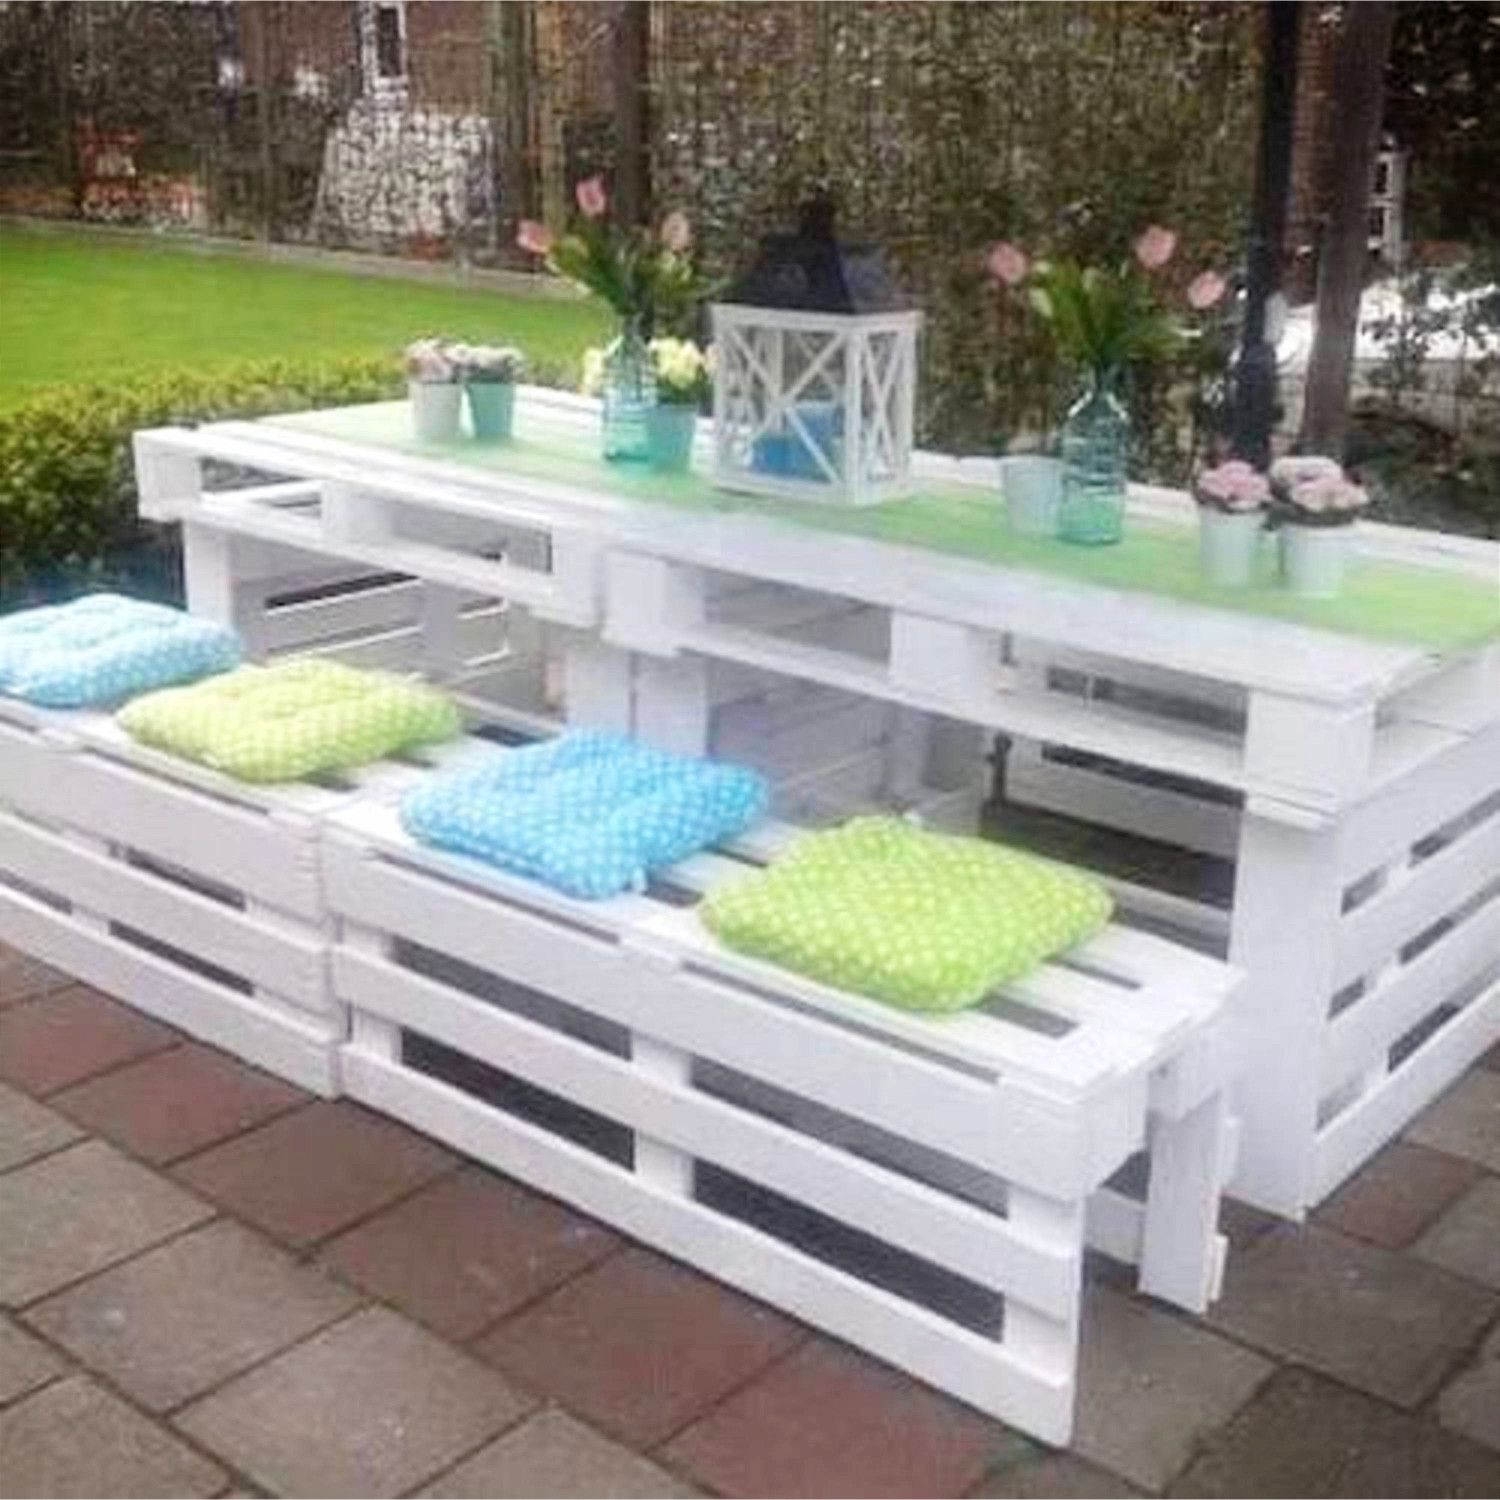 Charming Pallet Projects   19+ Clever, Crafty And Easy DIY Pallet Ideas   Easy DIY  Ideas From Involvery